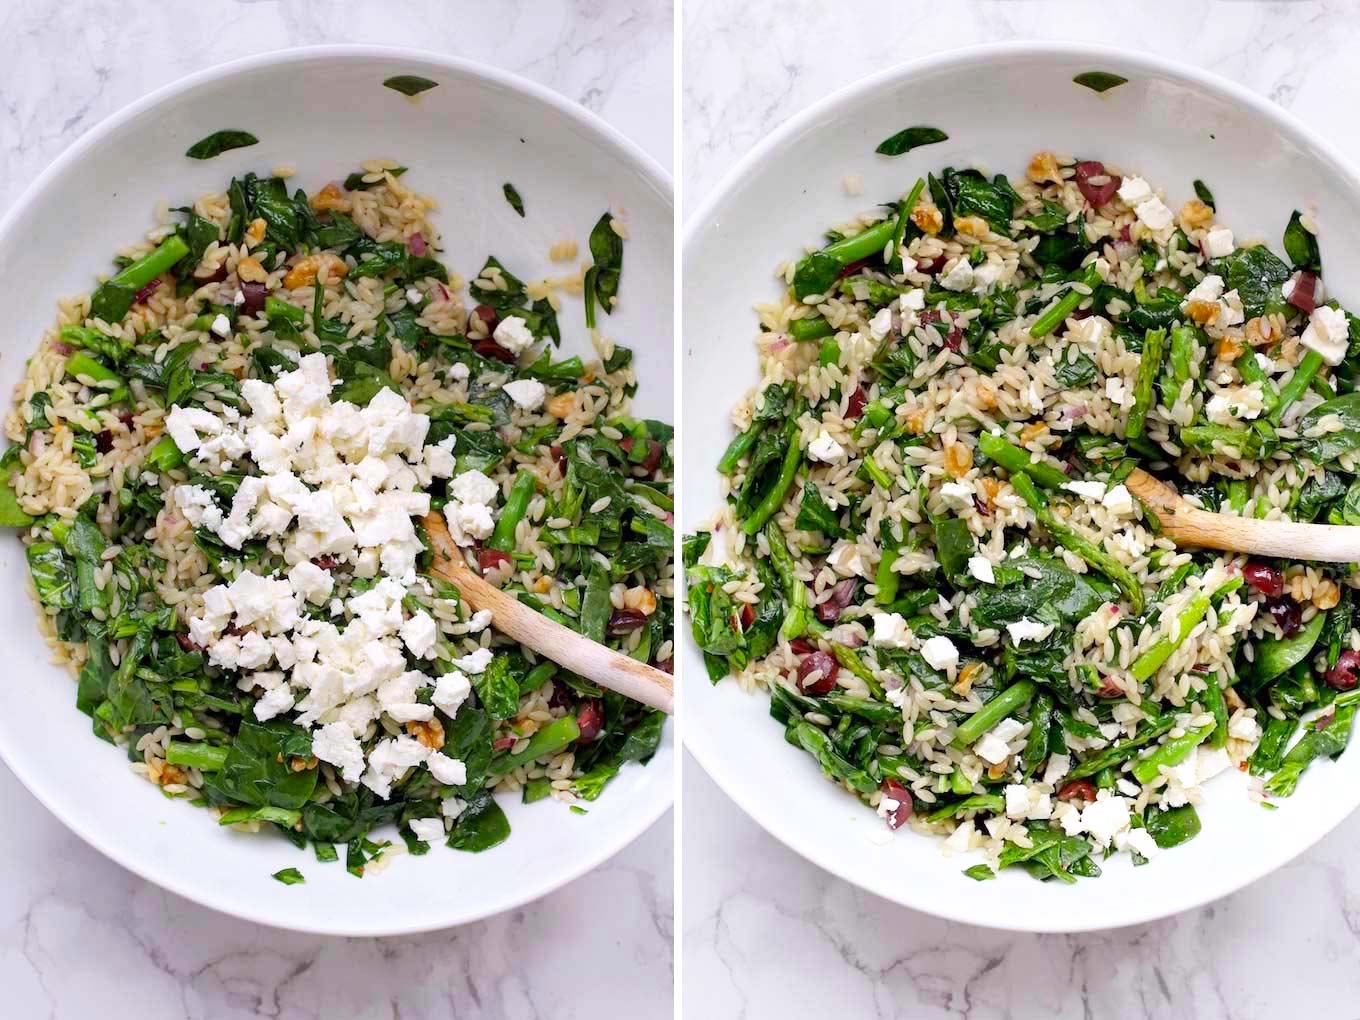 Side by side photo of orzo, asaparagus, spinach salad with feta cheese on top.